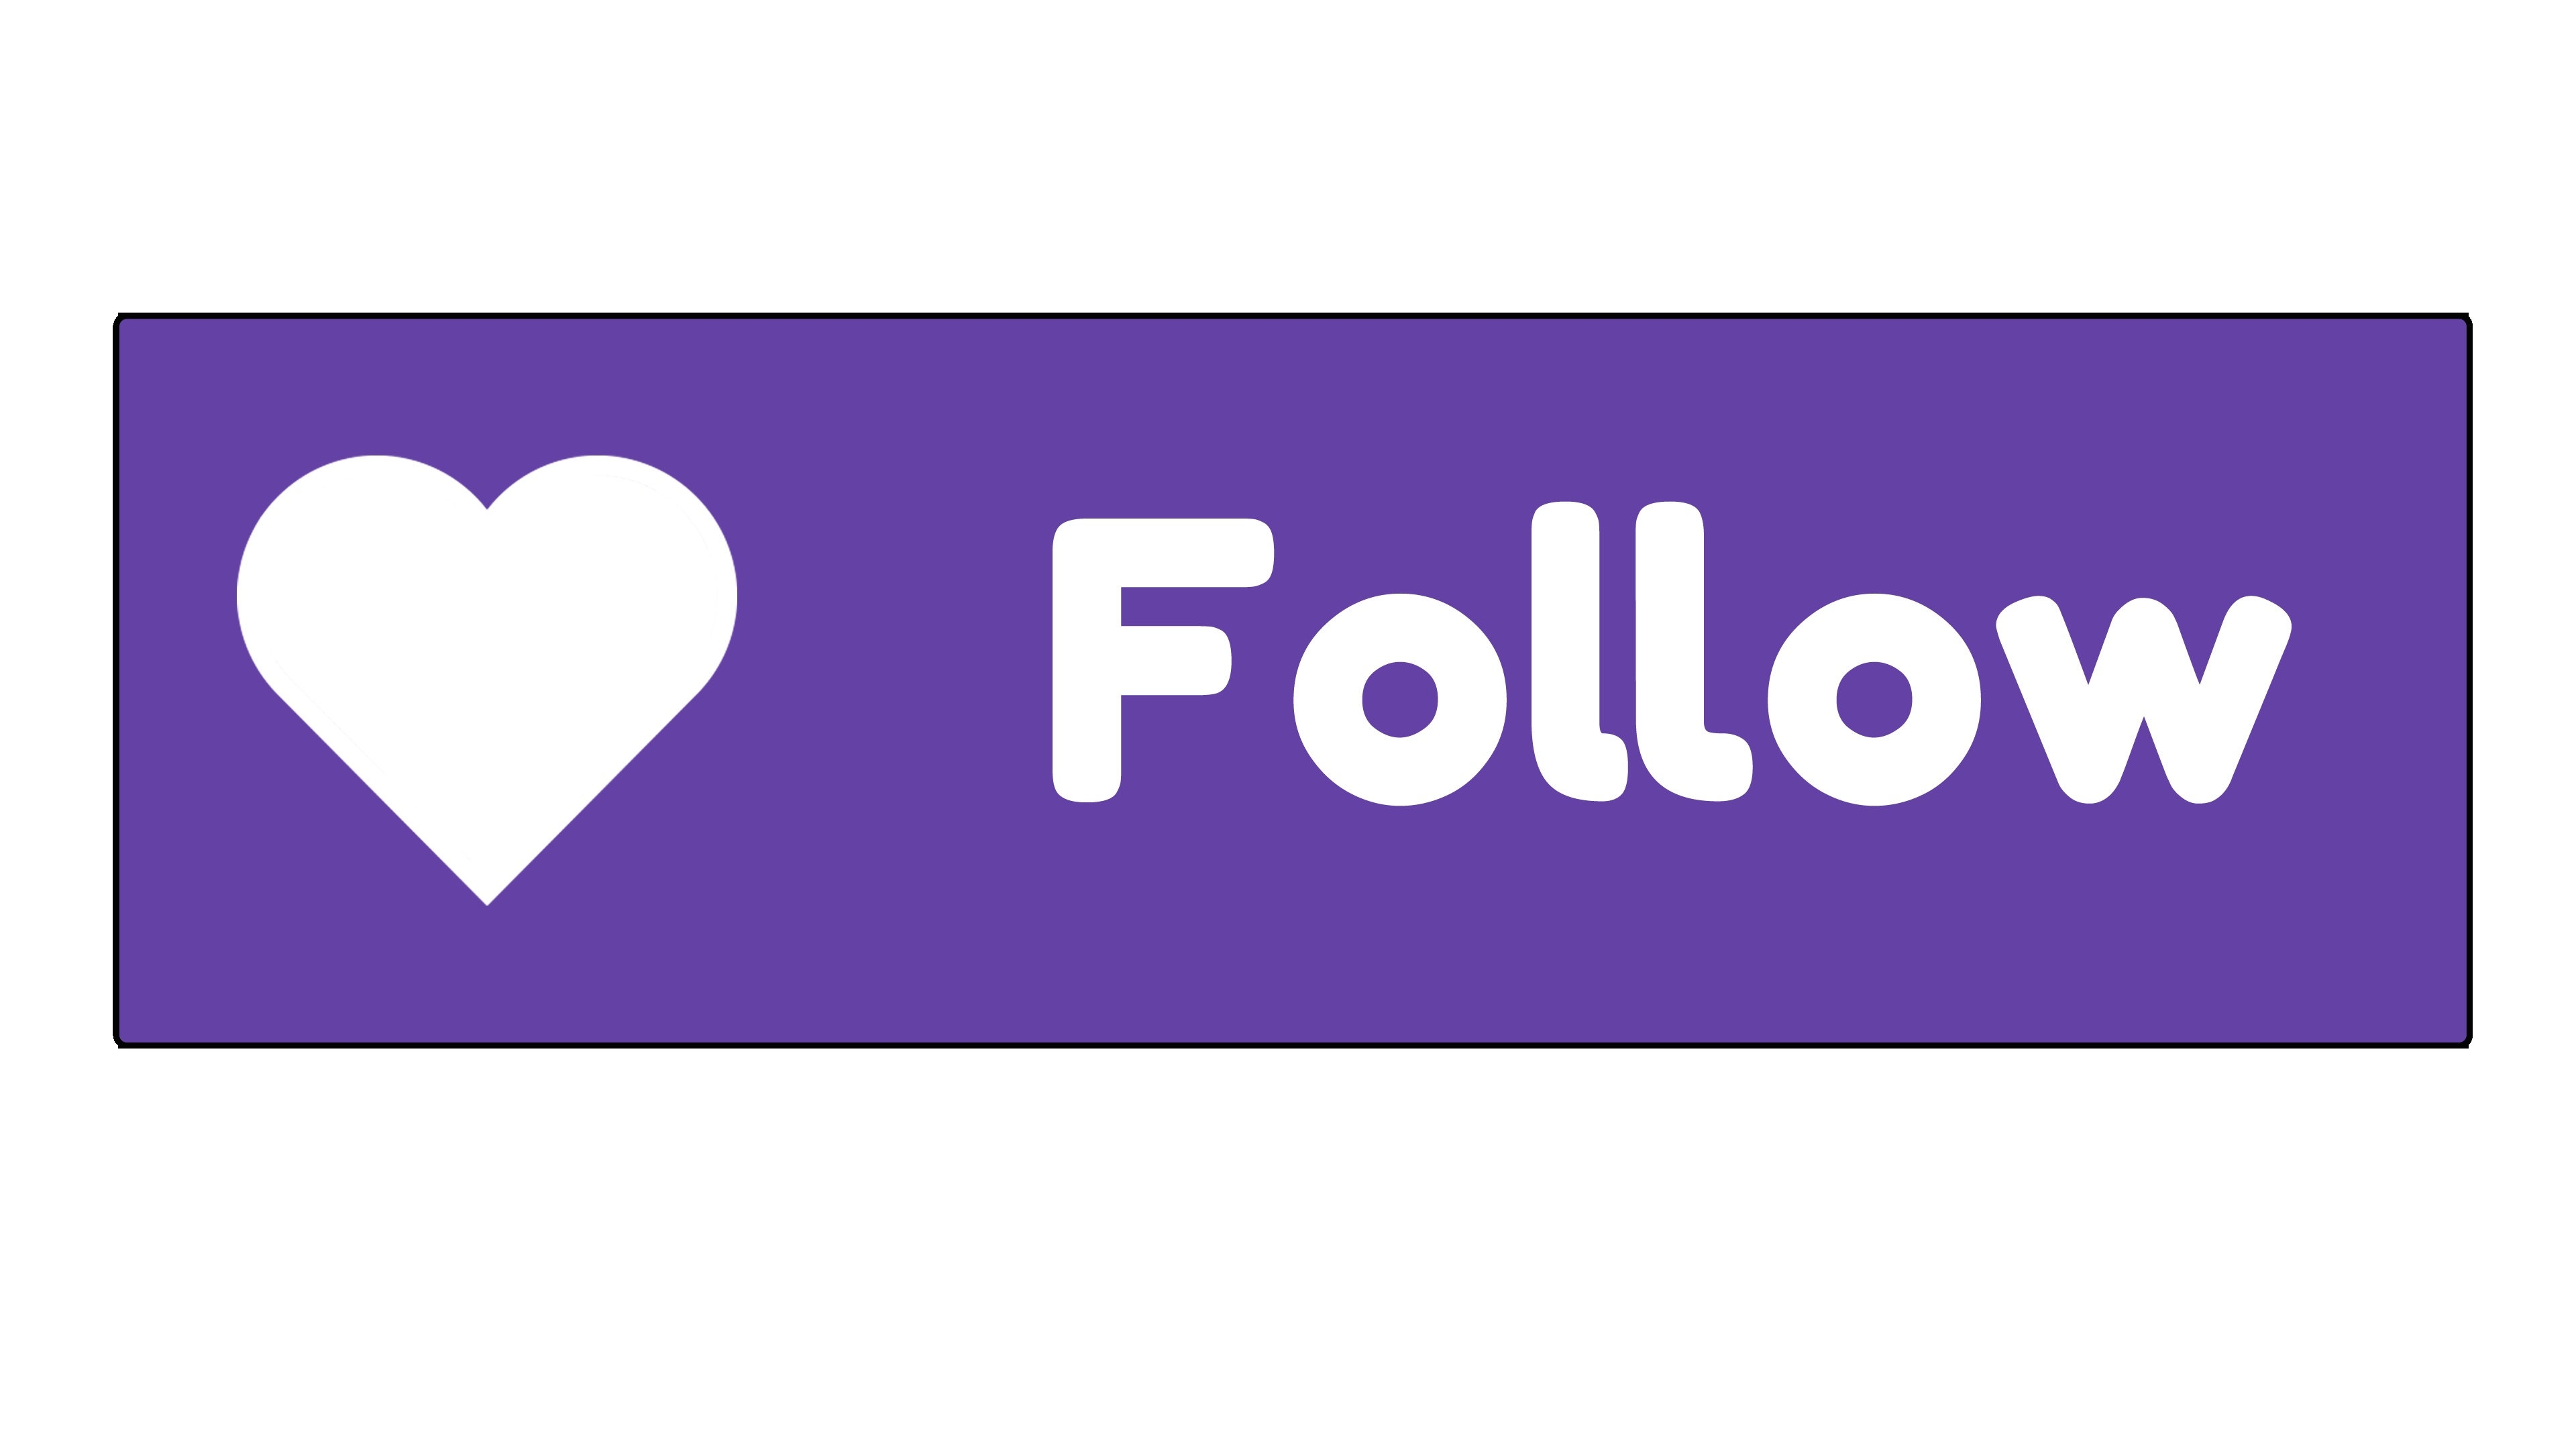 500 Followers with chat bots (login:oauth:token) Twitch 2019